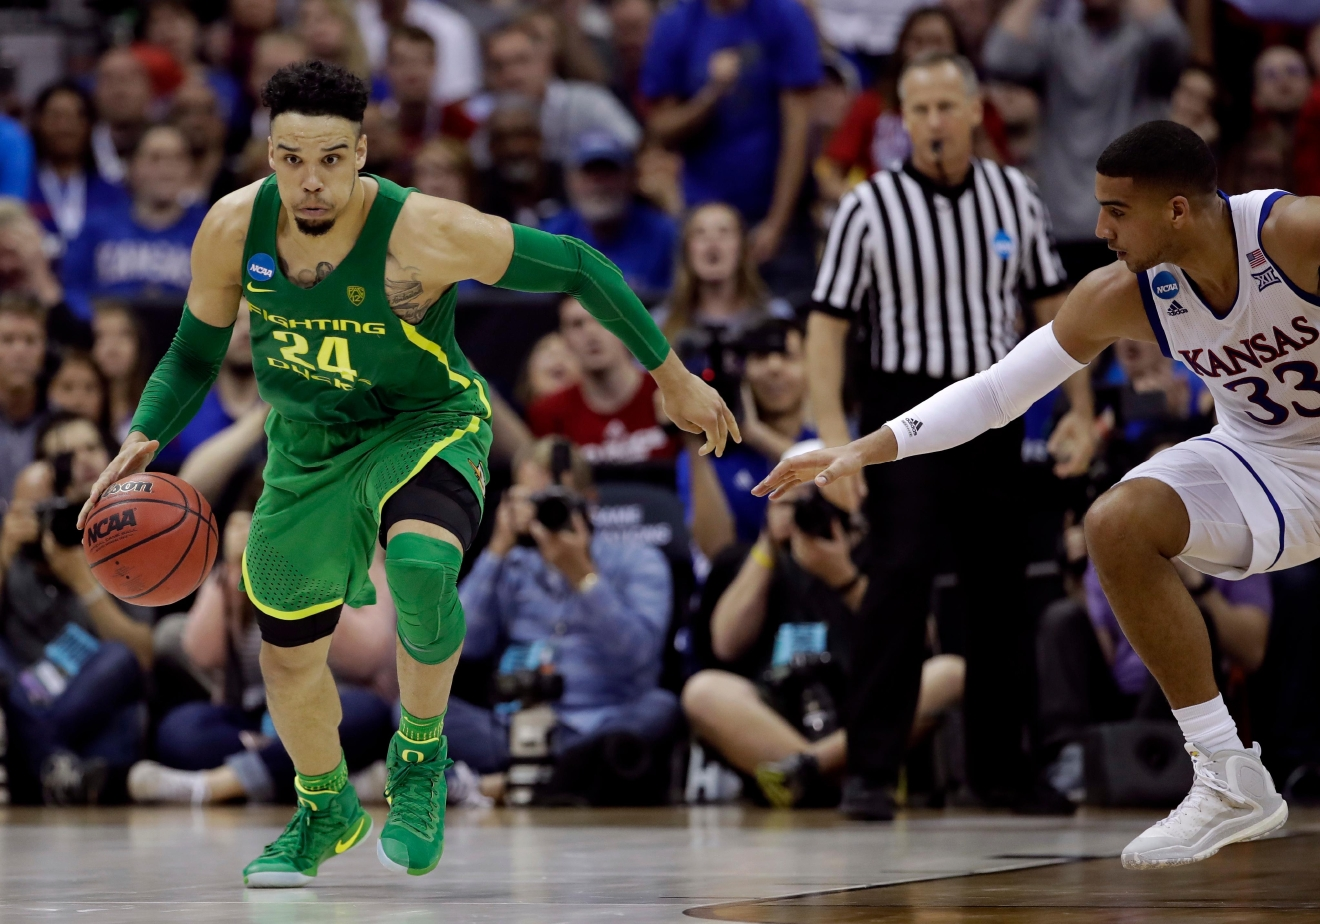 Oregon forward Dillon Brooks drives up the court past Kansas forward Landen Lucas, right, during the second half of the Midwest Regional final of the NCAA men's college basketball tournament, Saturday, March 25, 2017, in Kansas City, Mo. (AP Photo/Charlie Riedel)